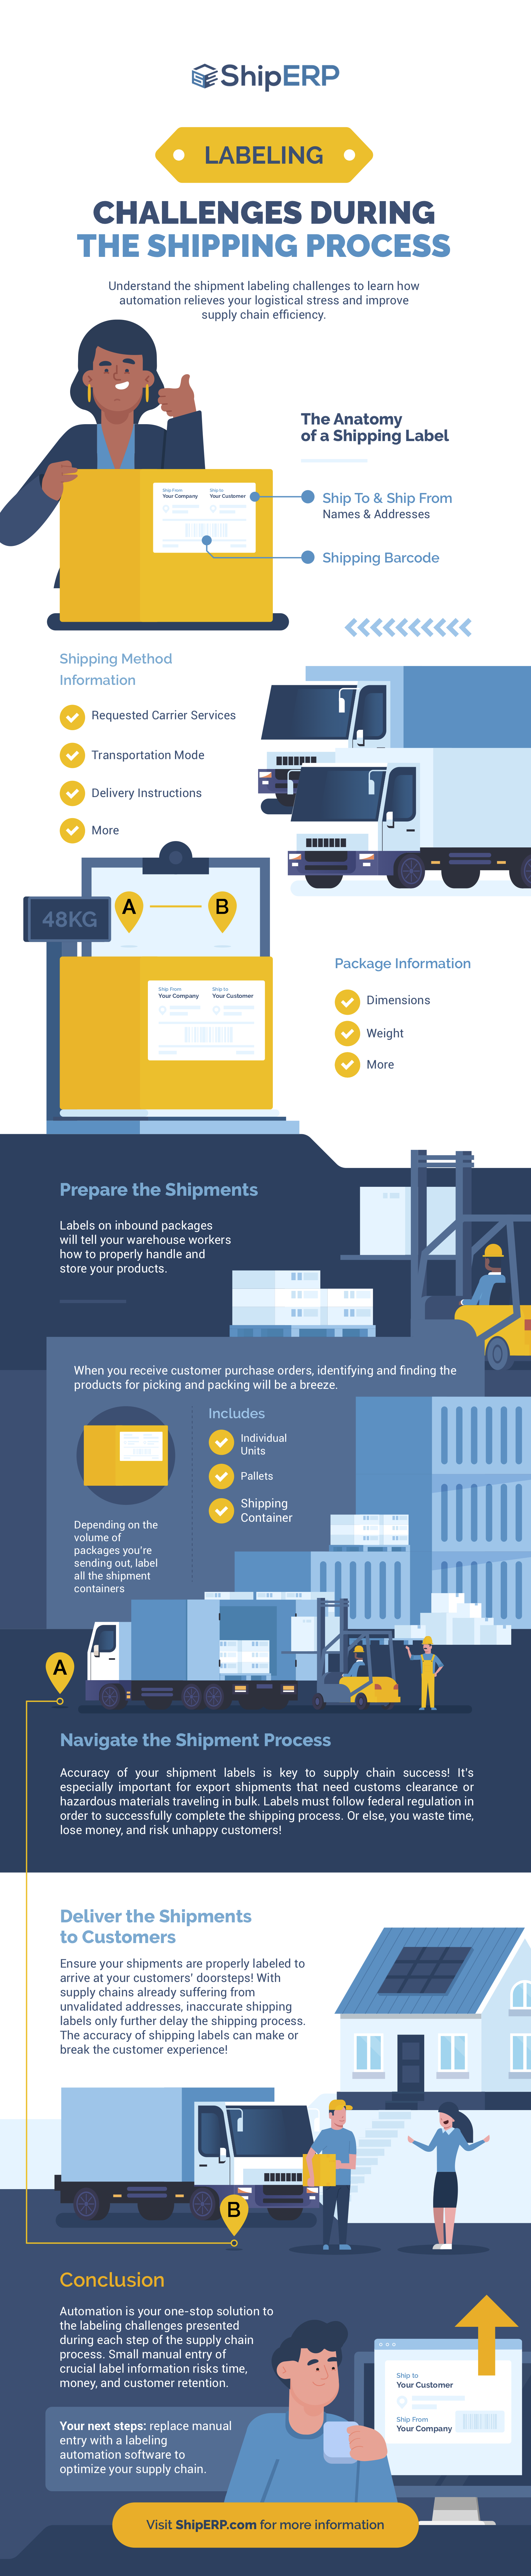 Labeling Challenges During the Shipping Process infographic